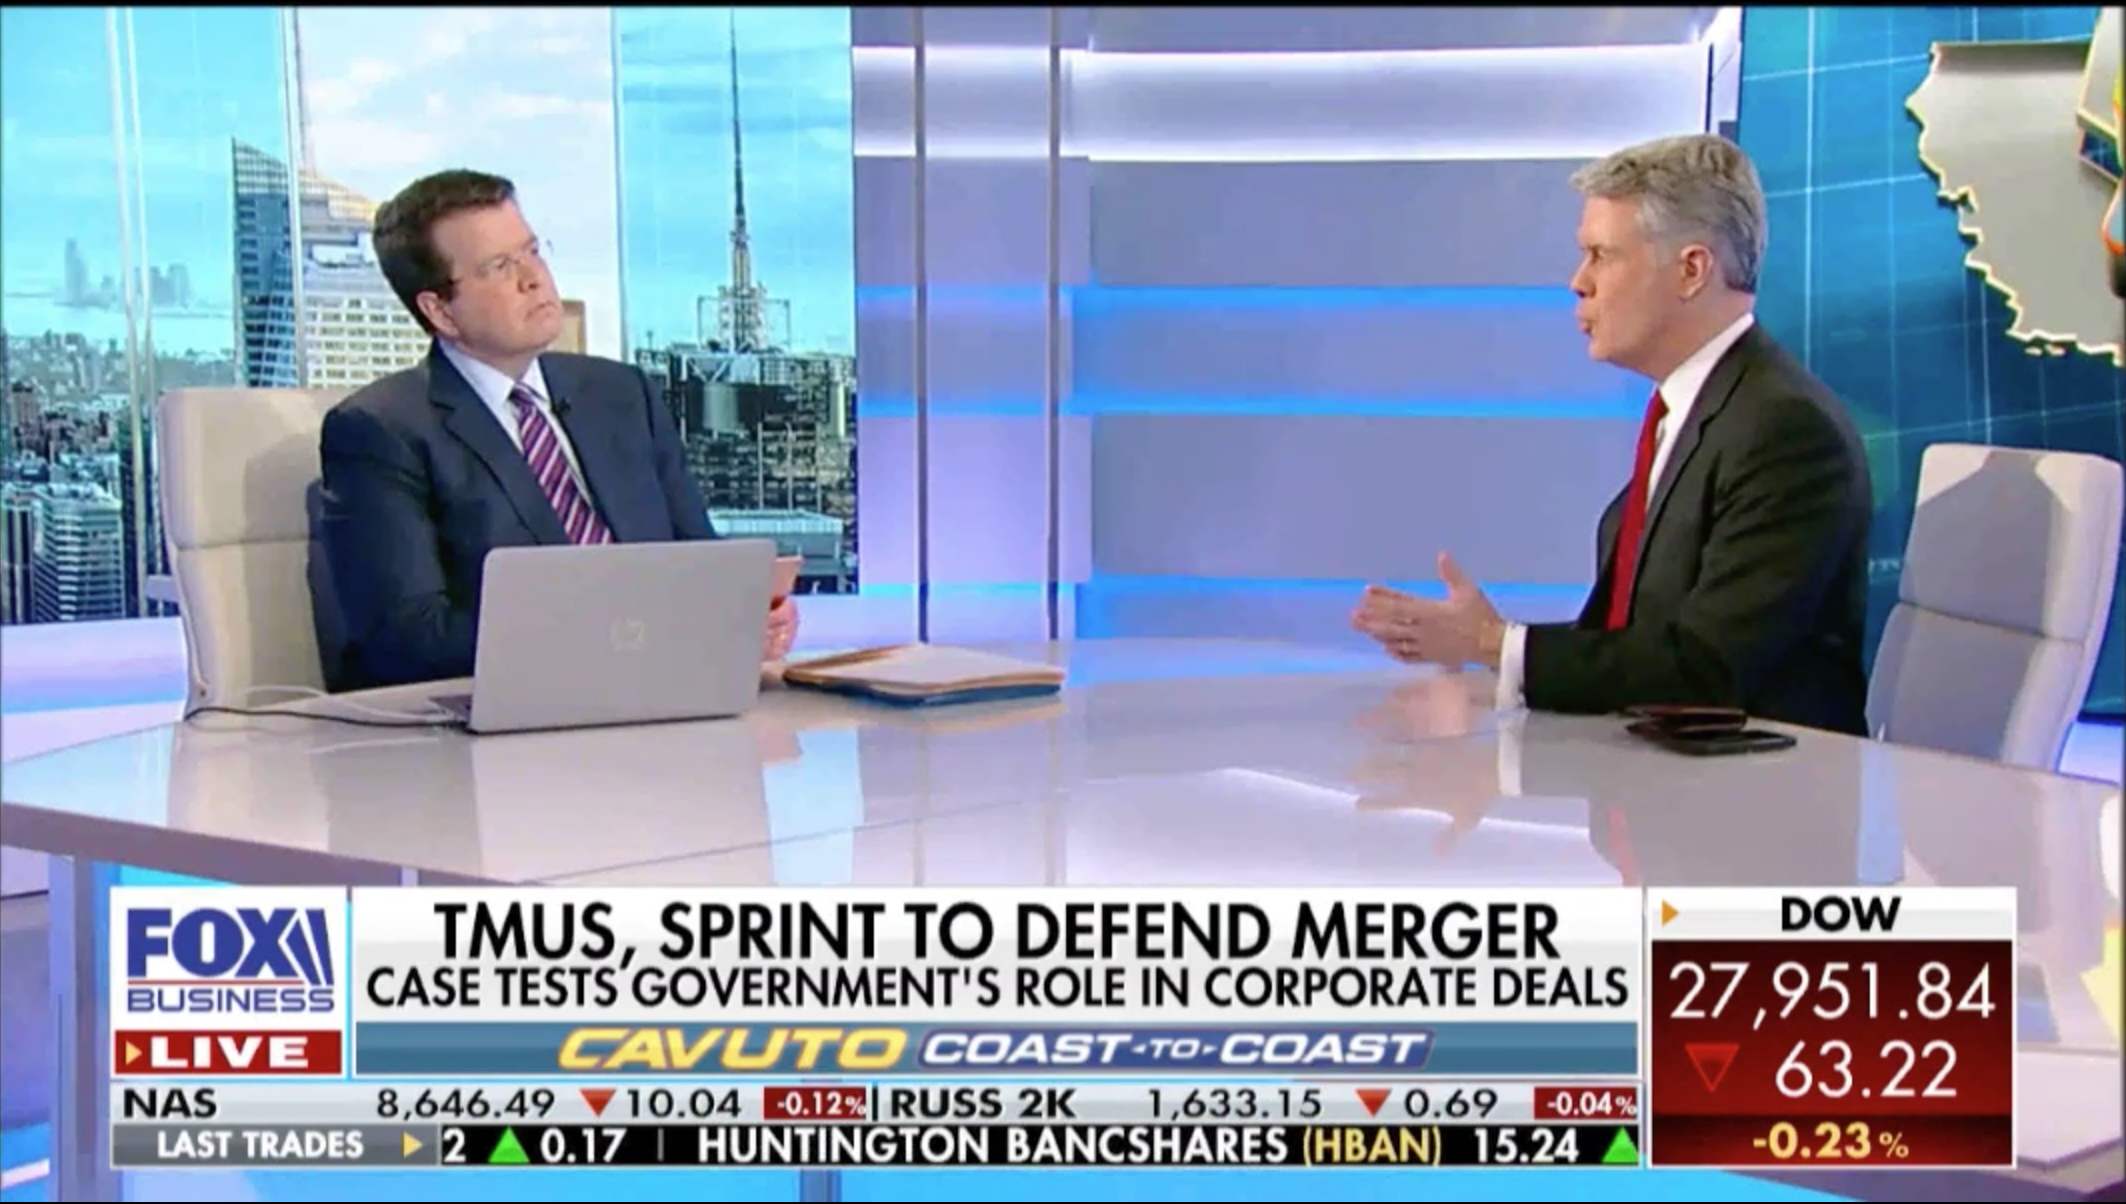 Robert McDowell discusses the T-Mobile/Sprint merger